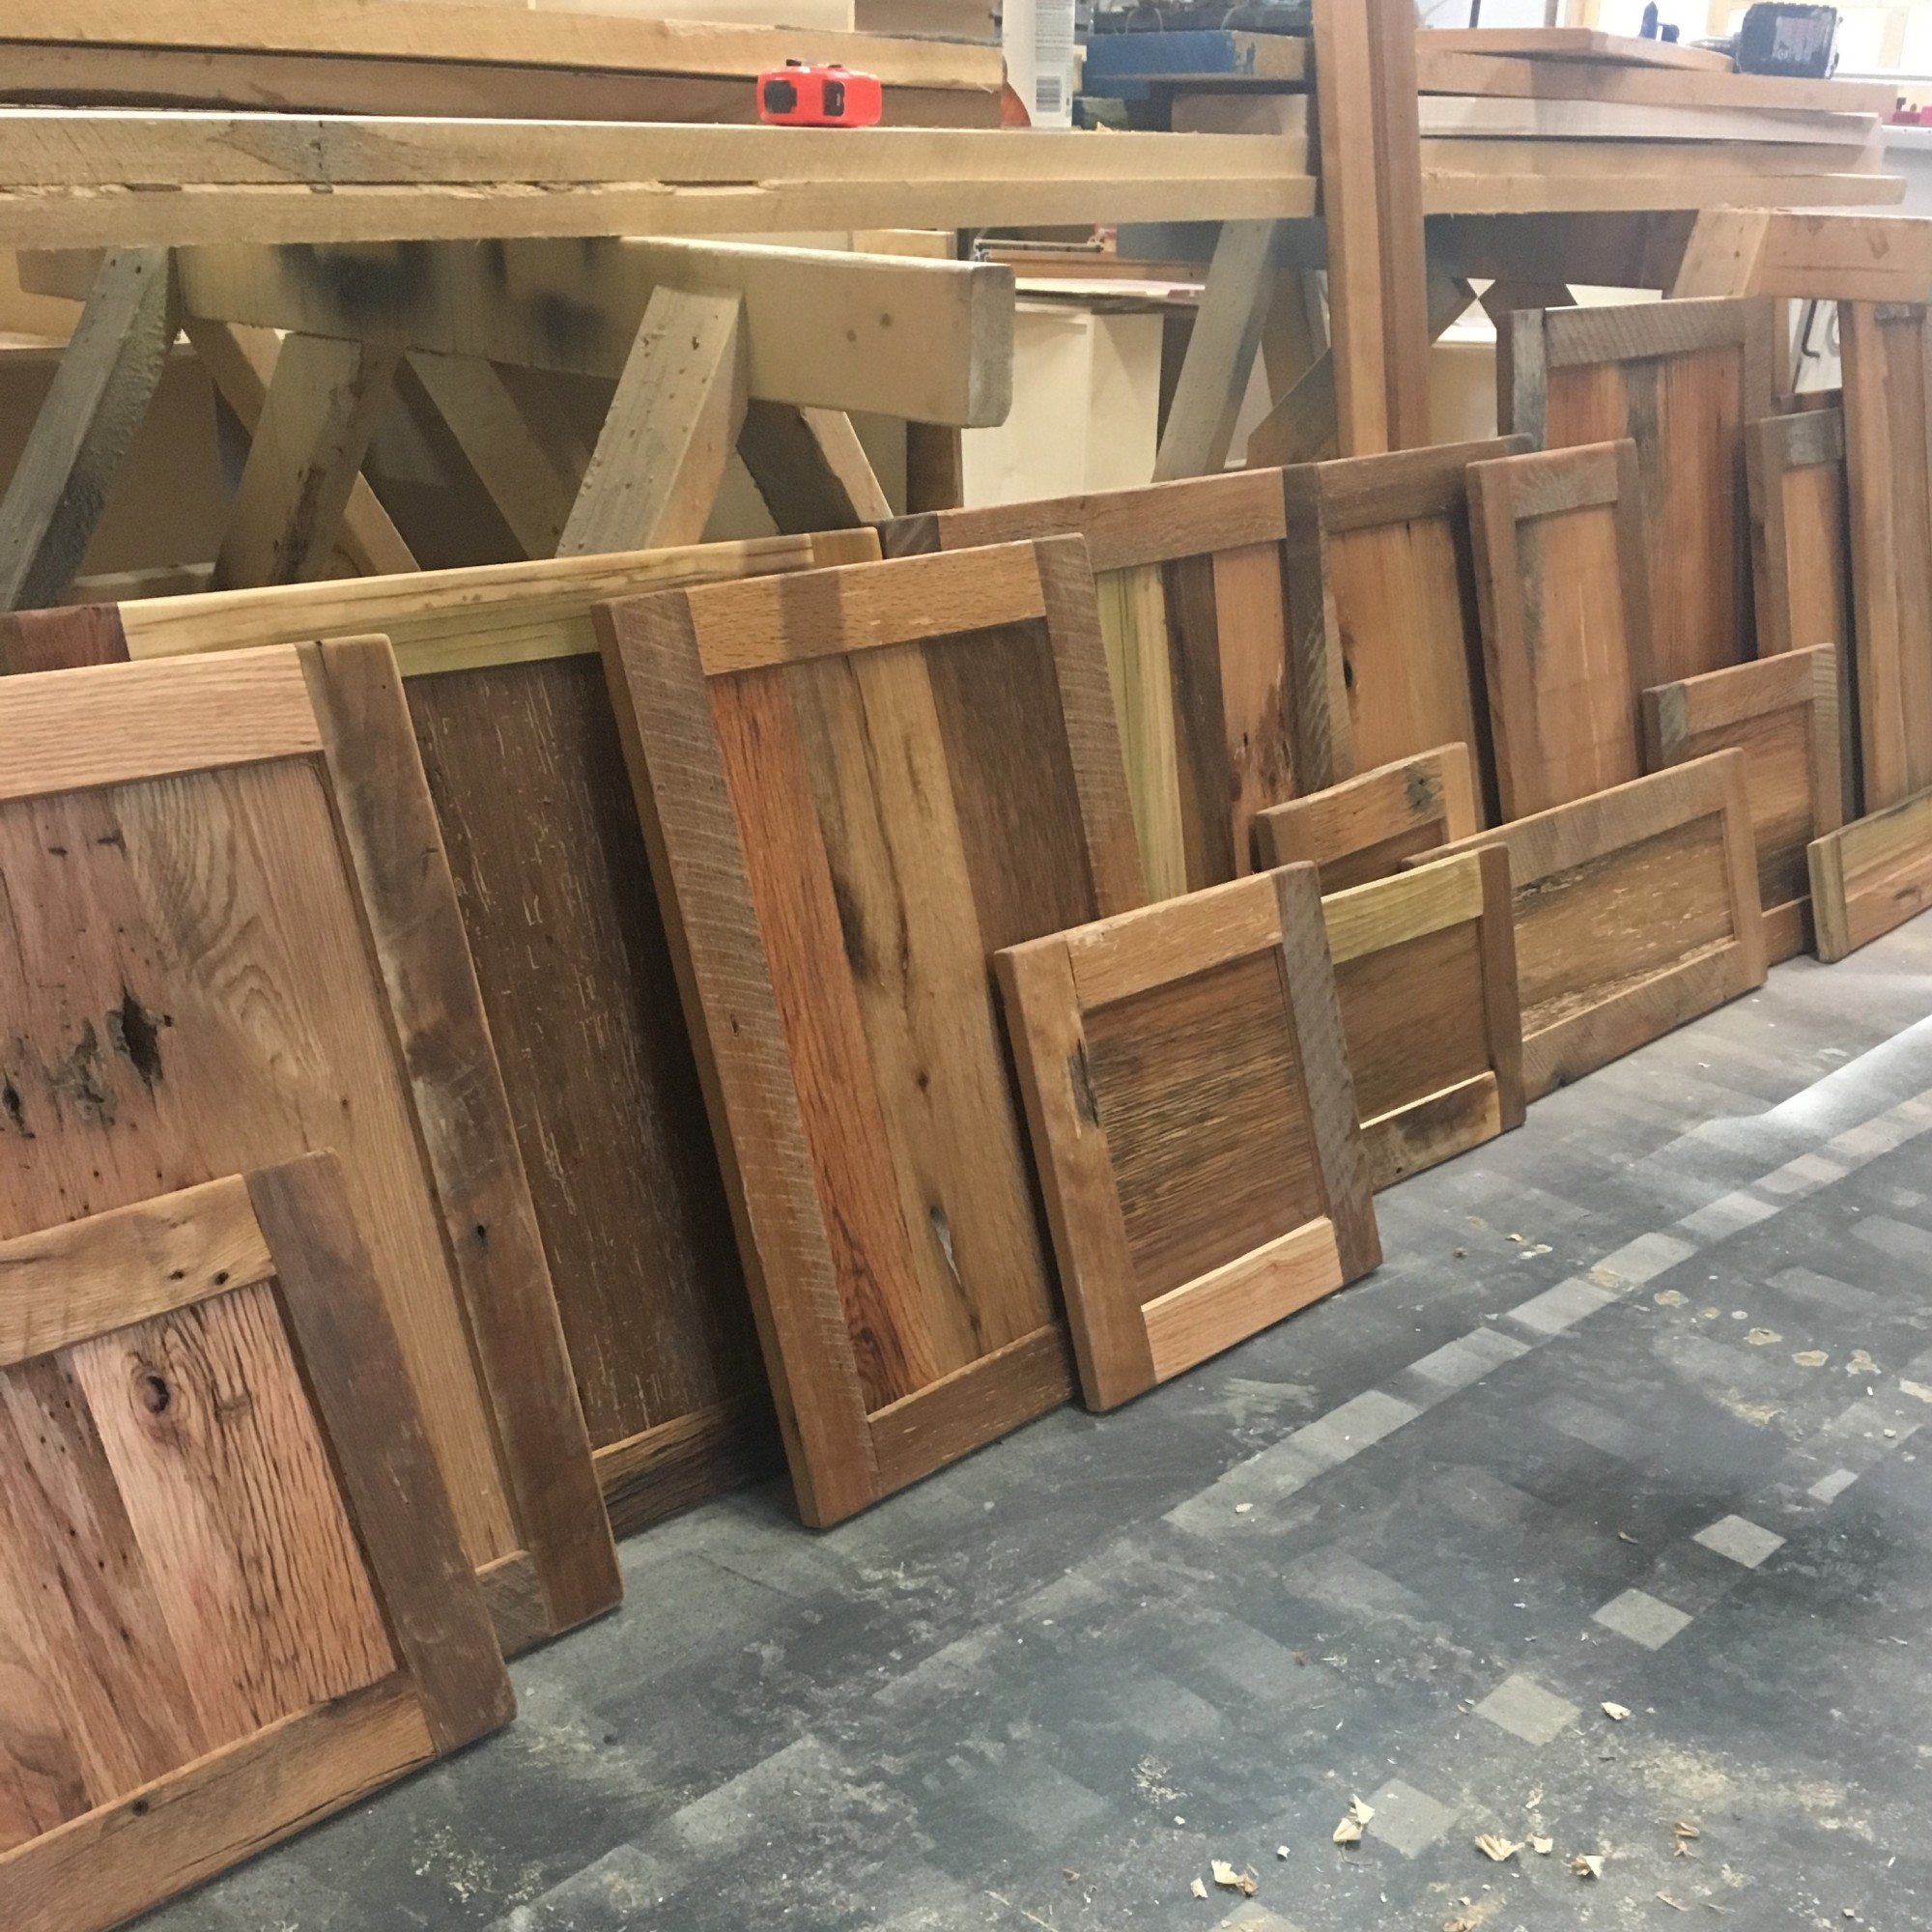 Kitchen Cabinet Refinishing - Tazewell, TN, Morristown, TN, Knoxville, TN, Middlesboro KY, Pineville KY, Home Remodeling - Wood Working - Reclaimed Wood